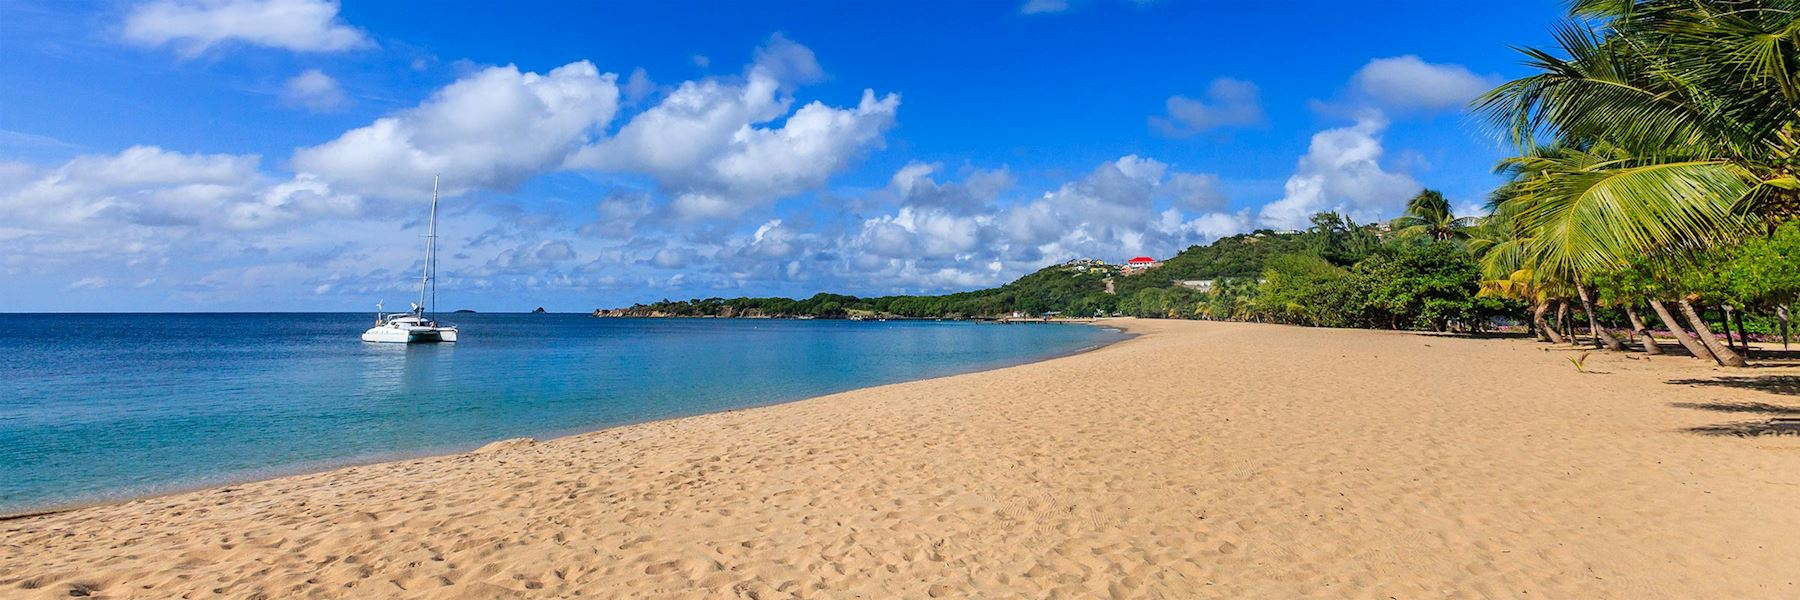 When is the best time to visit St Vincent and the Grenadines?